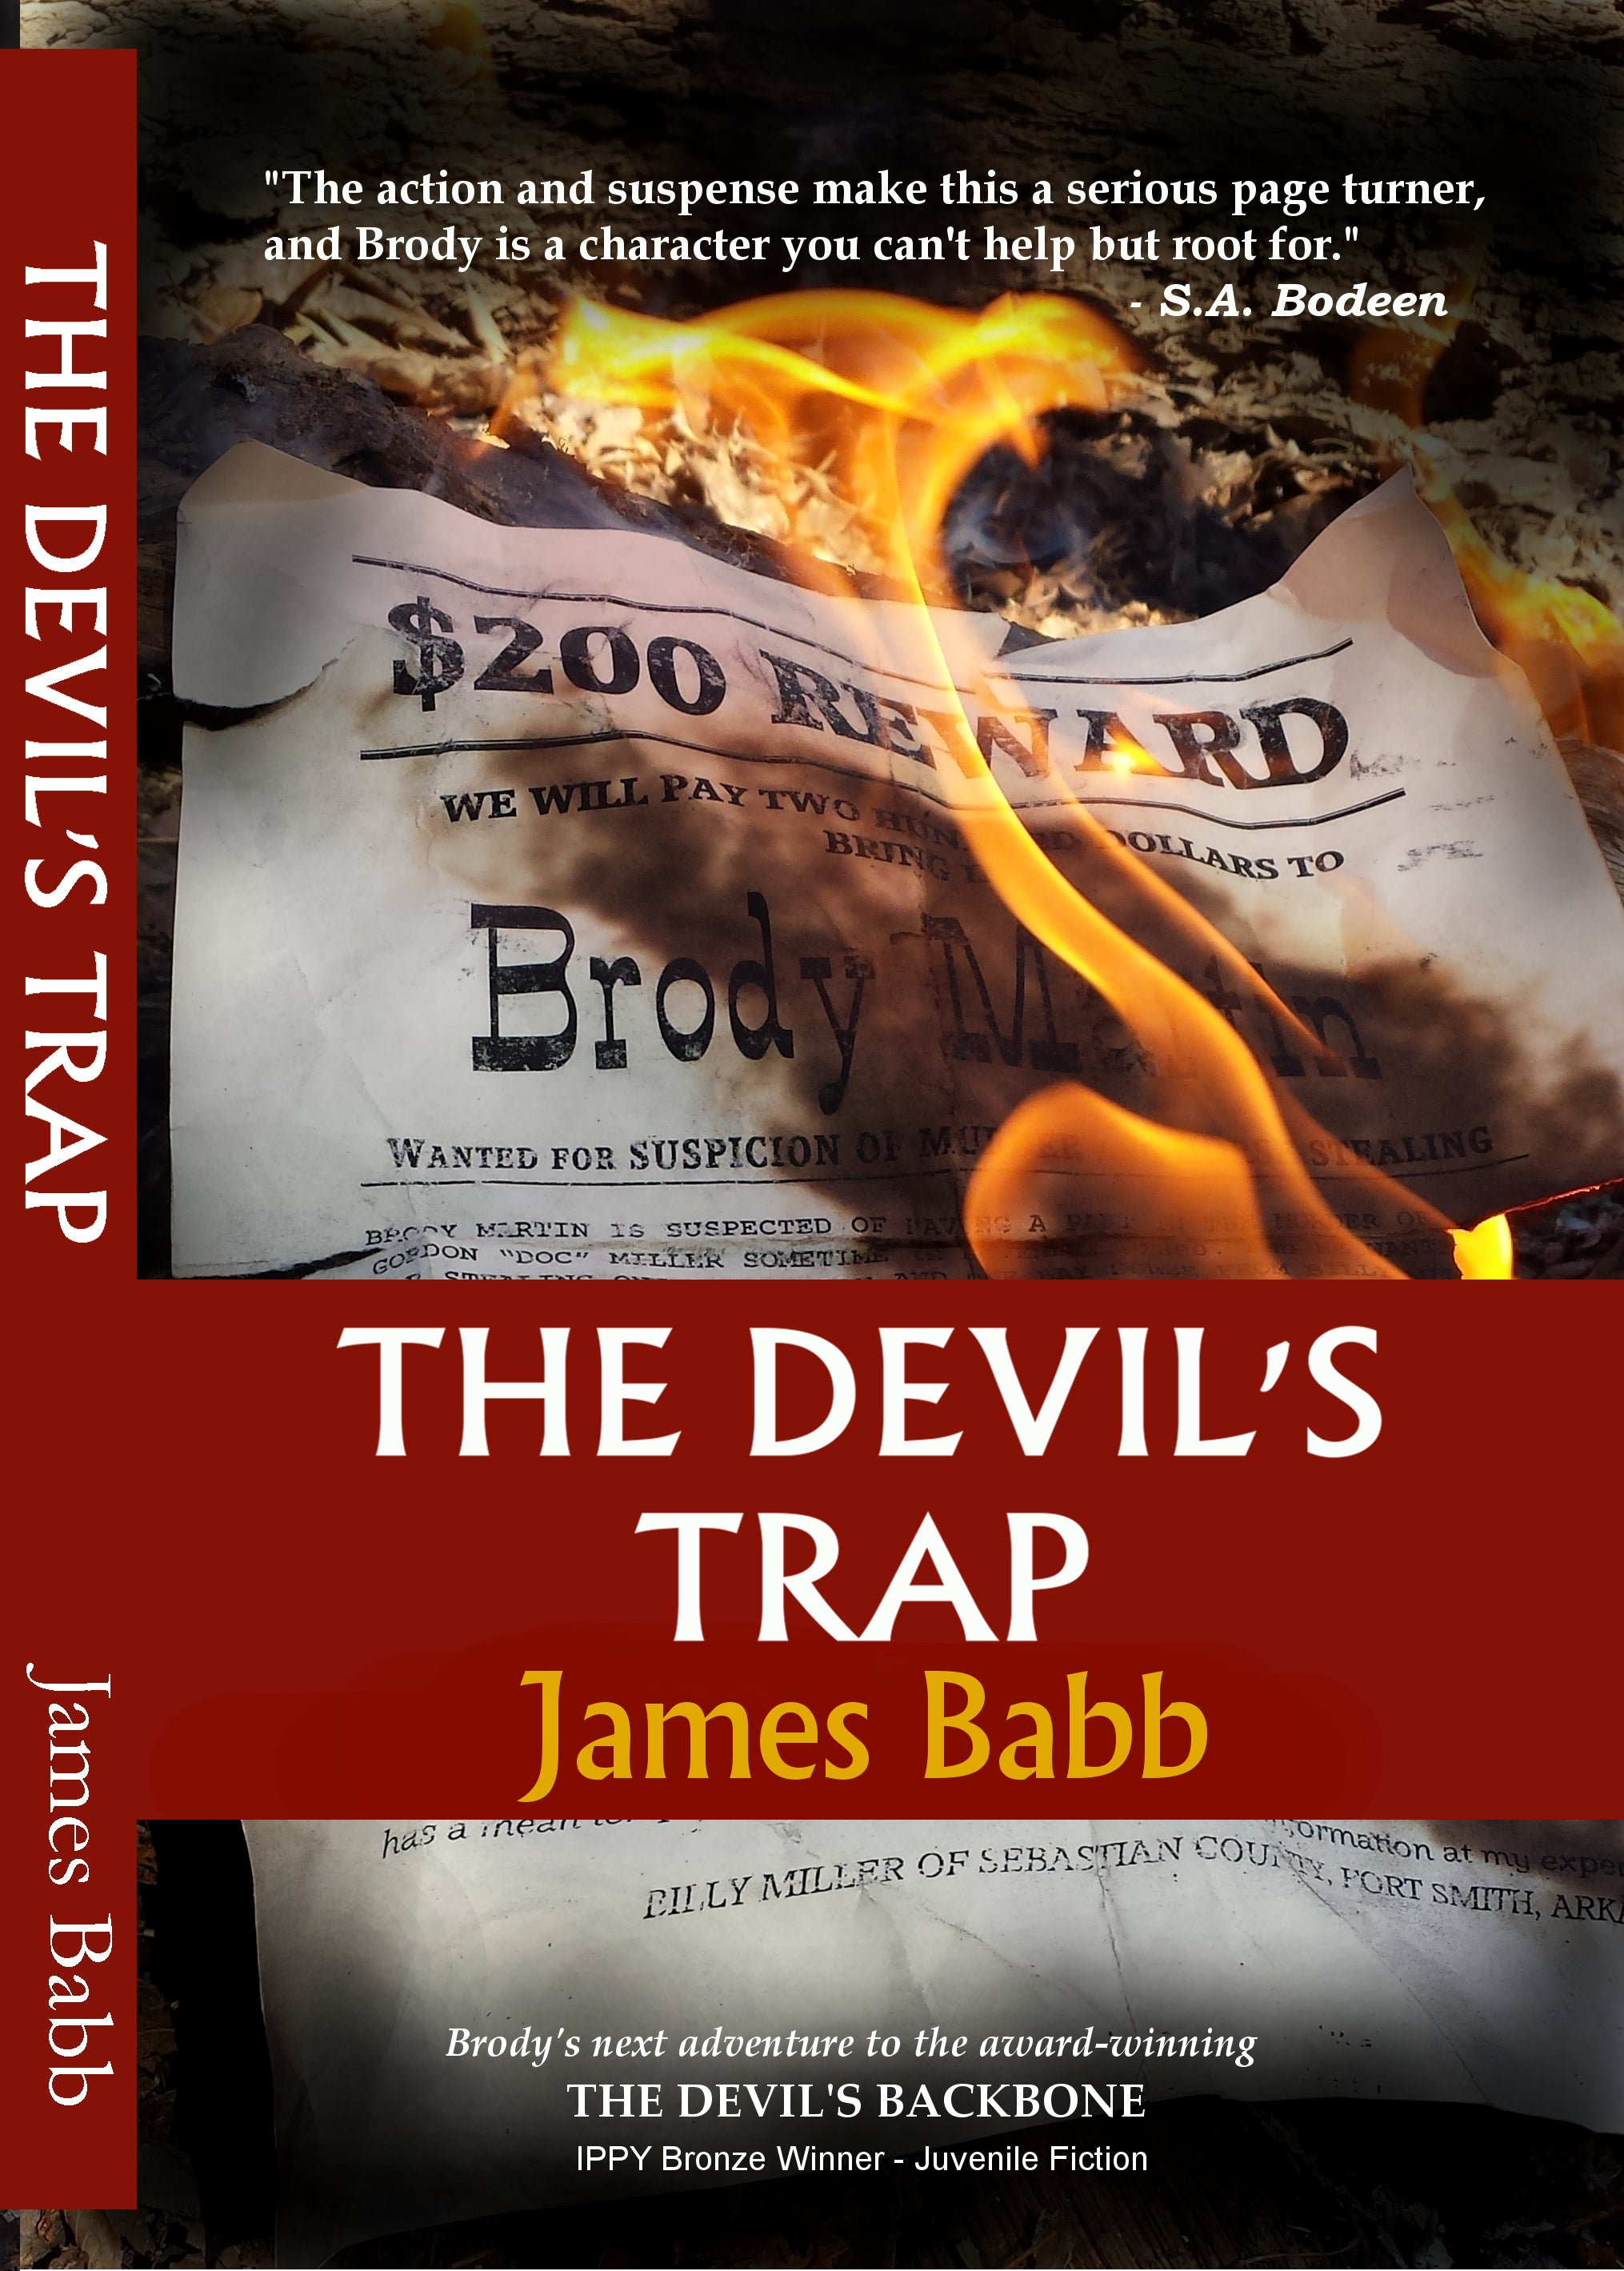 The Devil's Trap